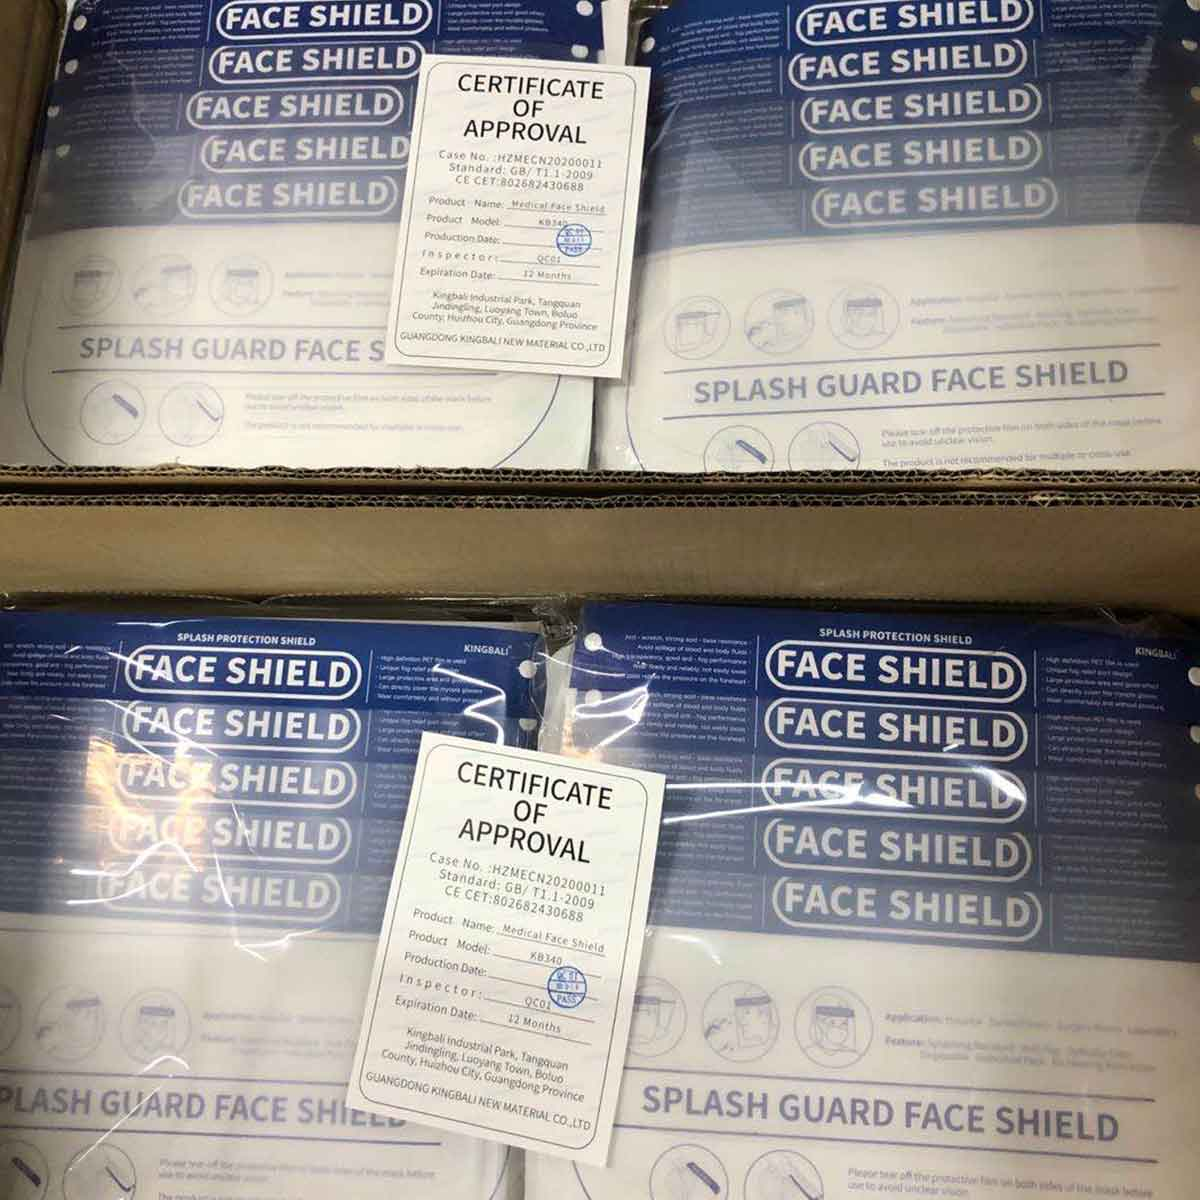 global-ppe-certified-medical-face-shield-photo